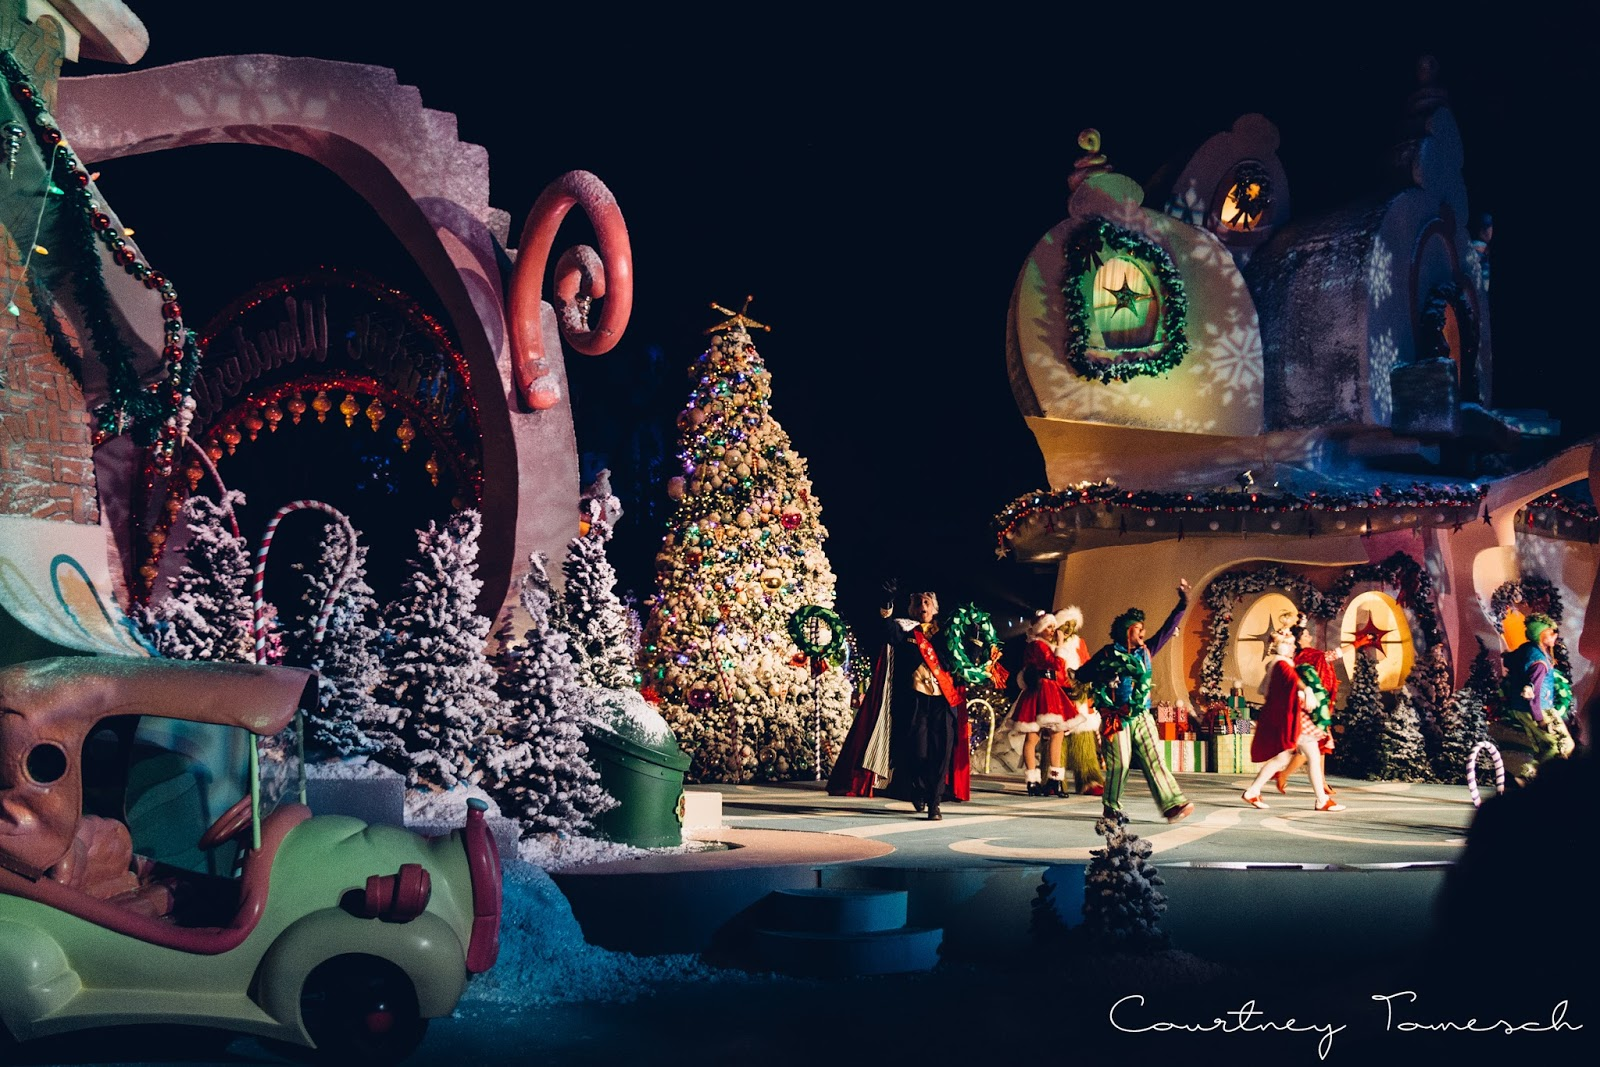 Courtney Tomesch Universal Studios Hollywood Grinchmas